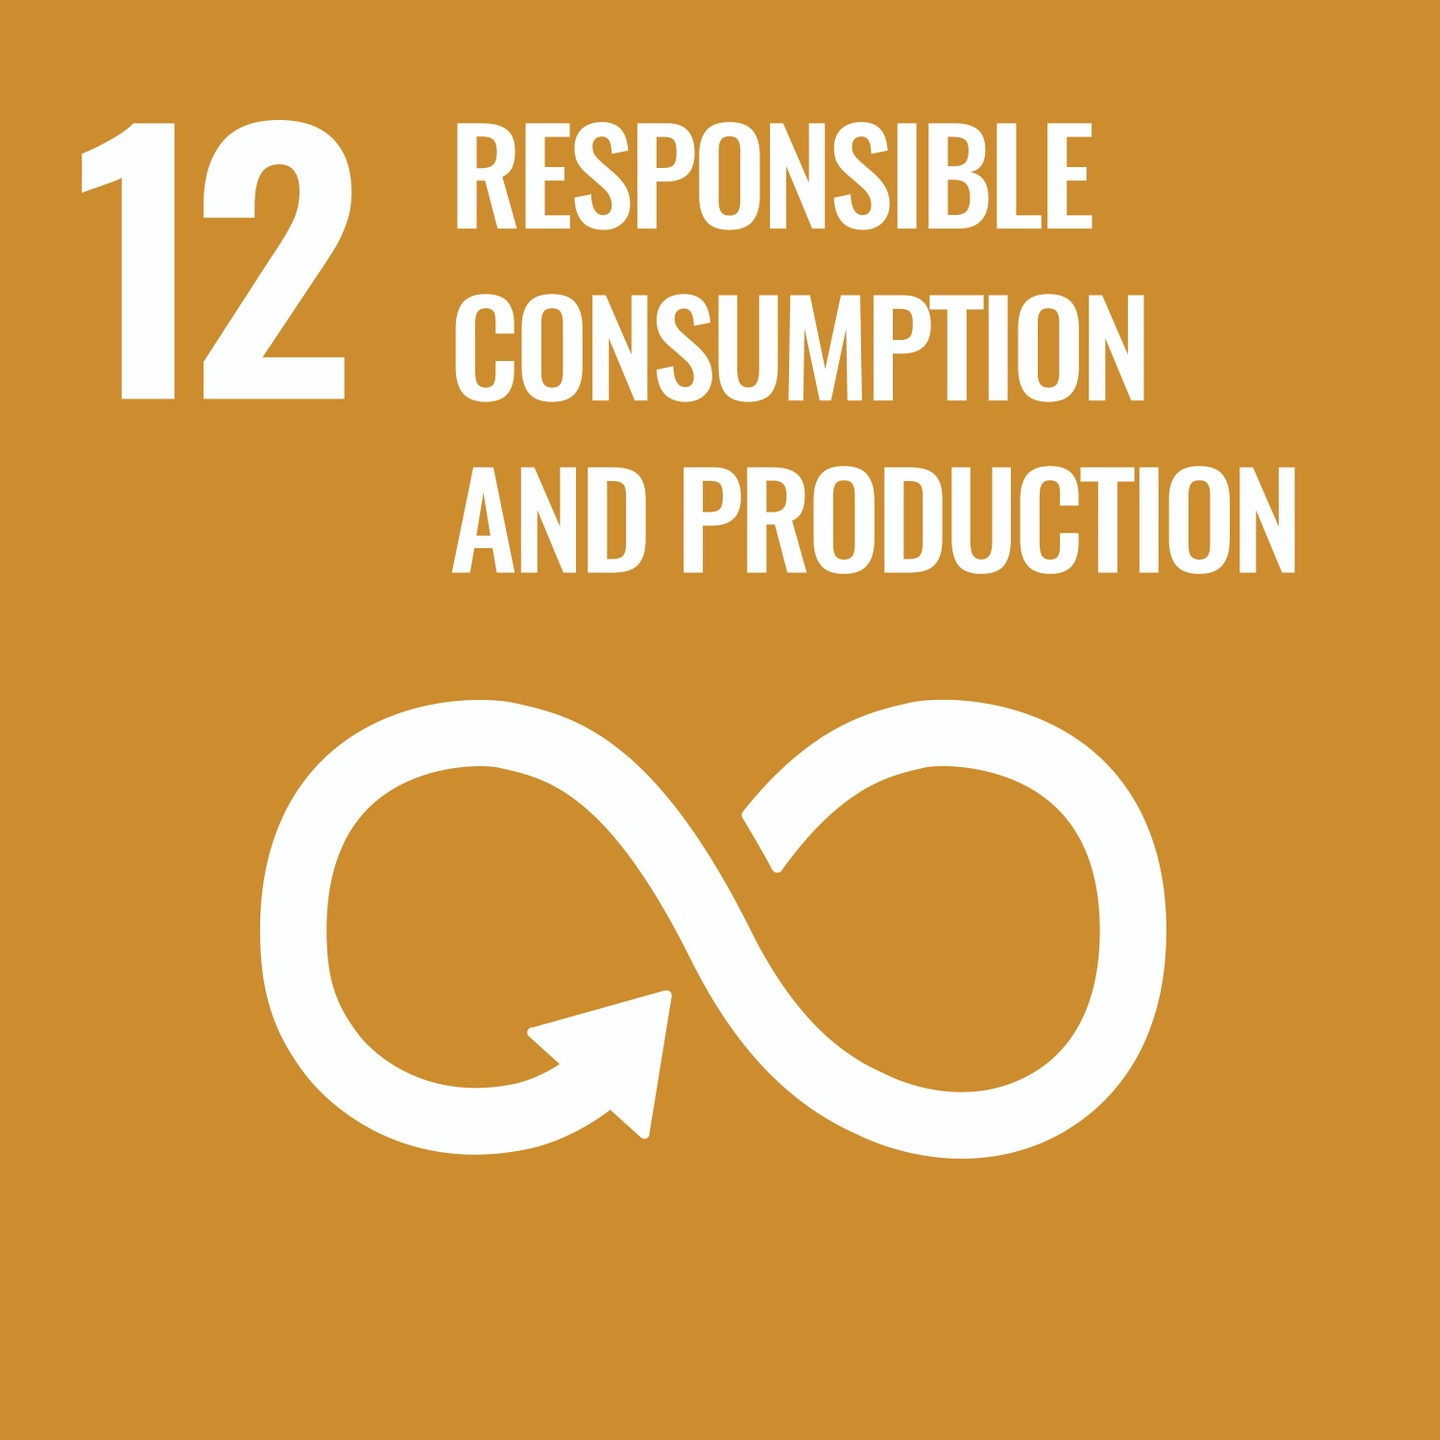 Goal 12, Responsible Consumption and Production, of The UN's Sustainable Development Goals (SDGs) Official Logo